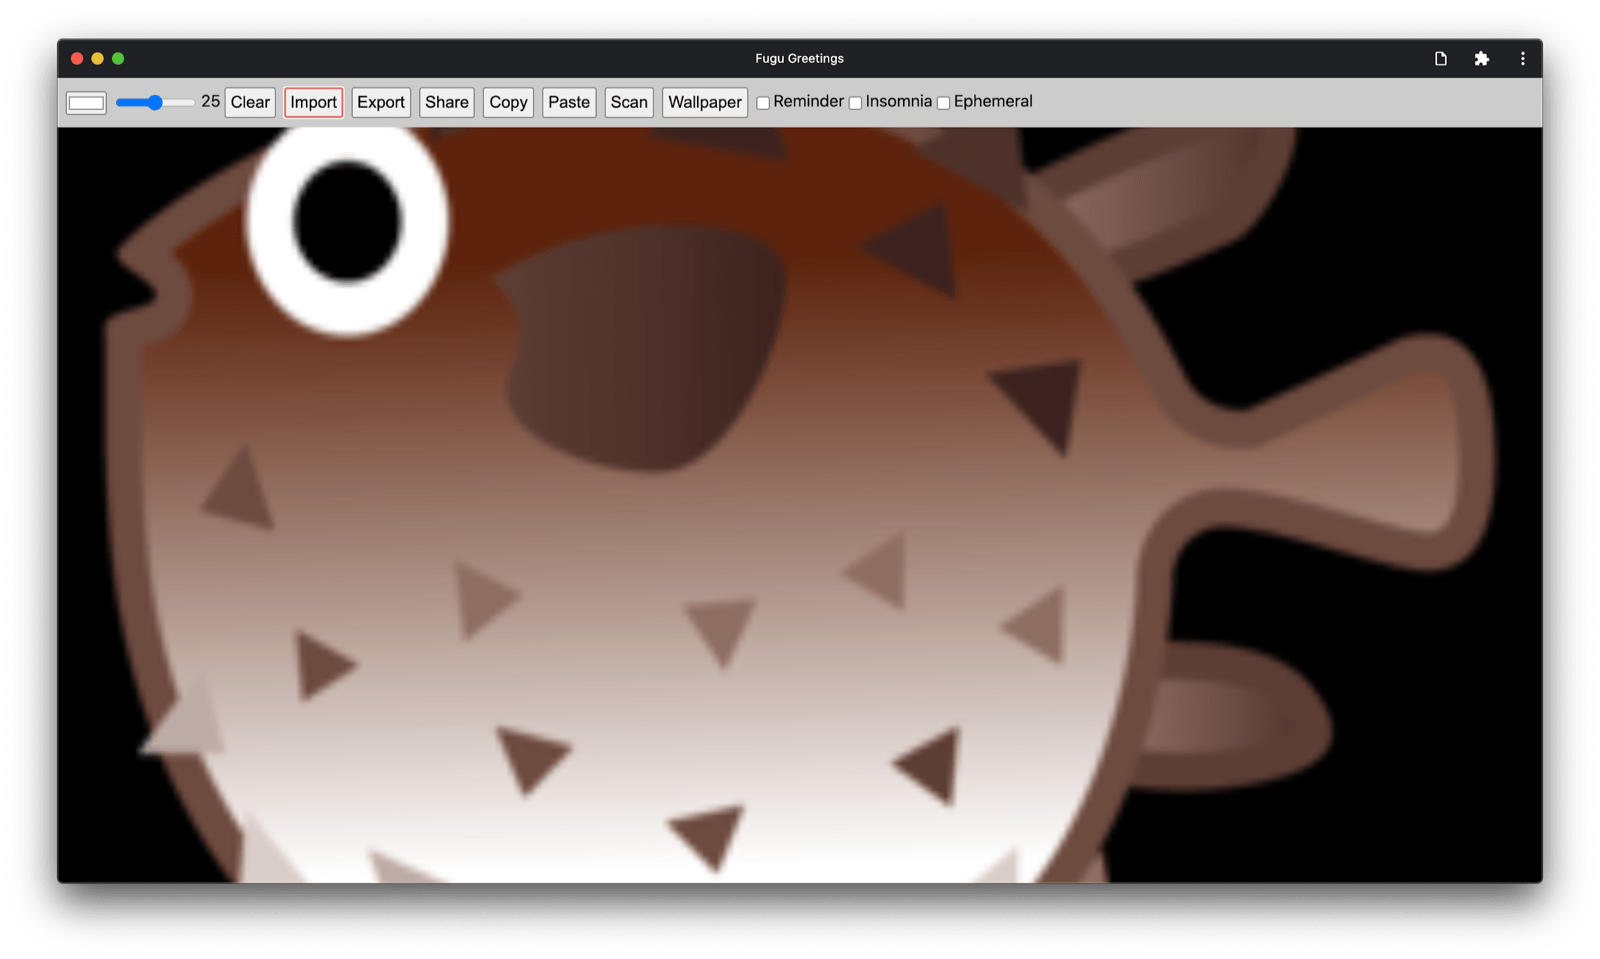 Fugu Greetings app now with an imported image.